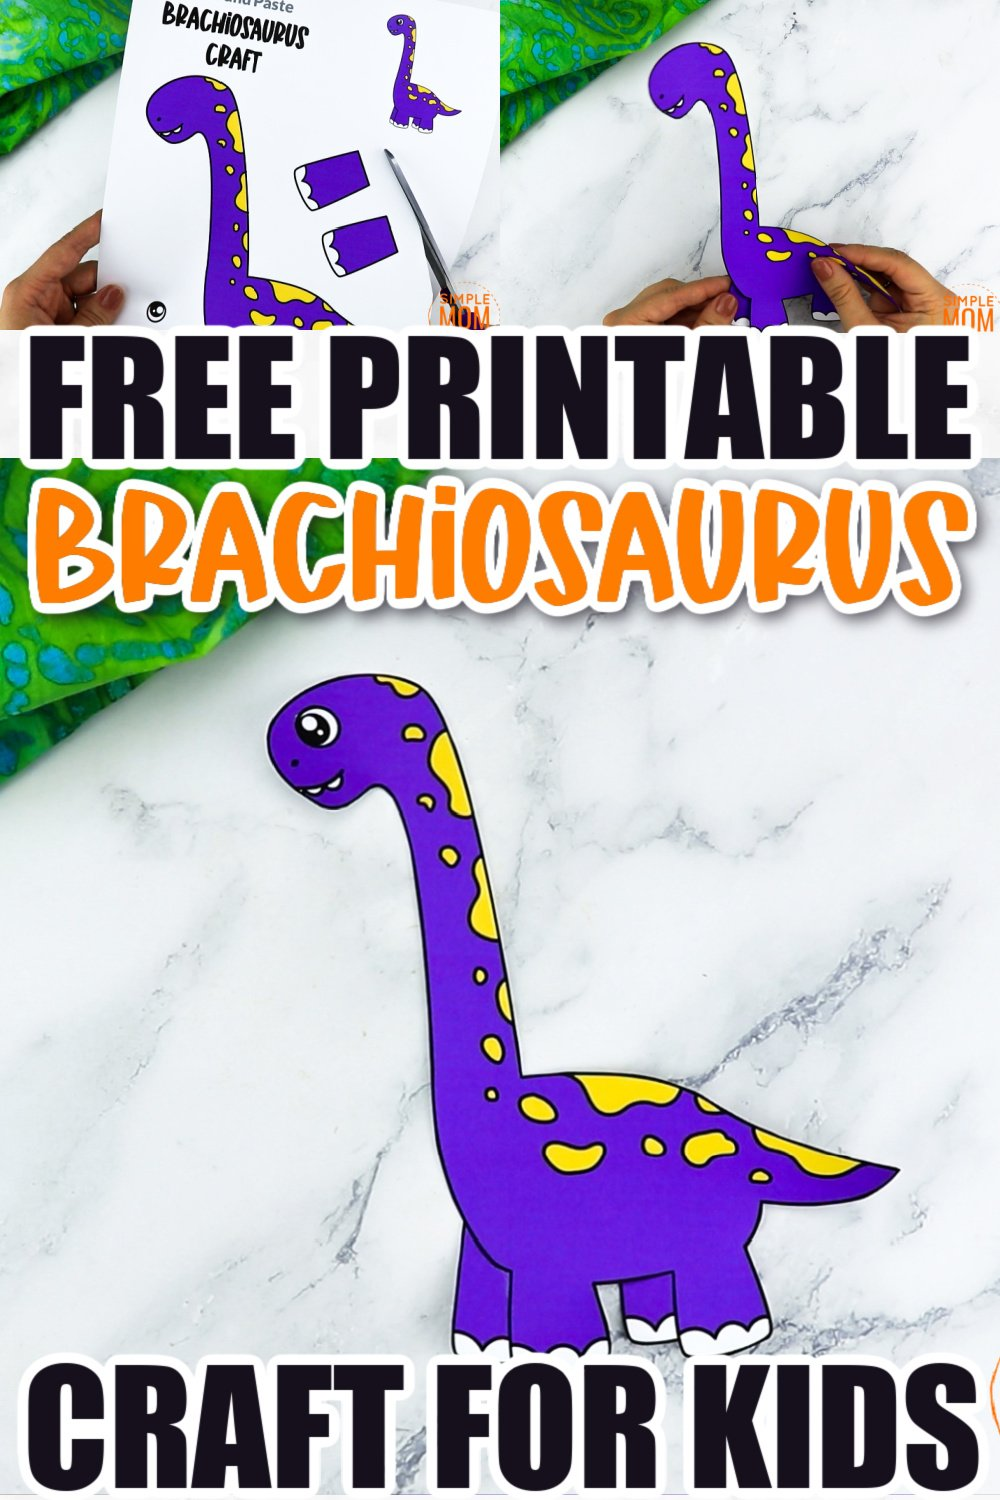 Do your kids love Jurassic Park? Check out this brachiosaurus craft! Your kids can use it as a drawing template for a paper plate craft or glue it to cardboard! Click now to download and print the free brachiosaurus dinosaur template now!